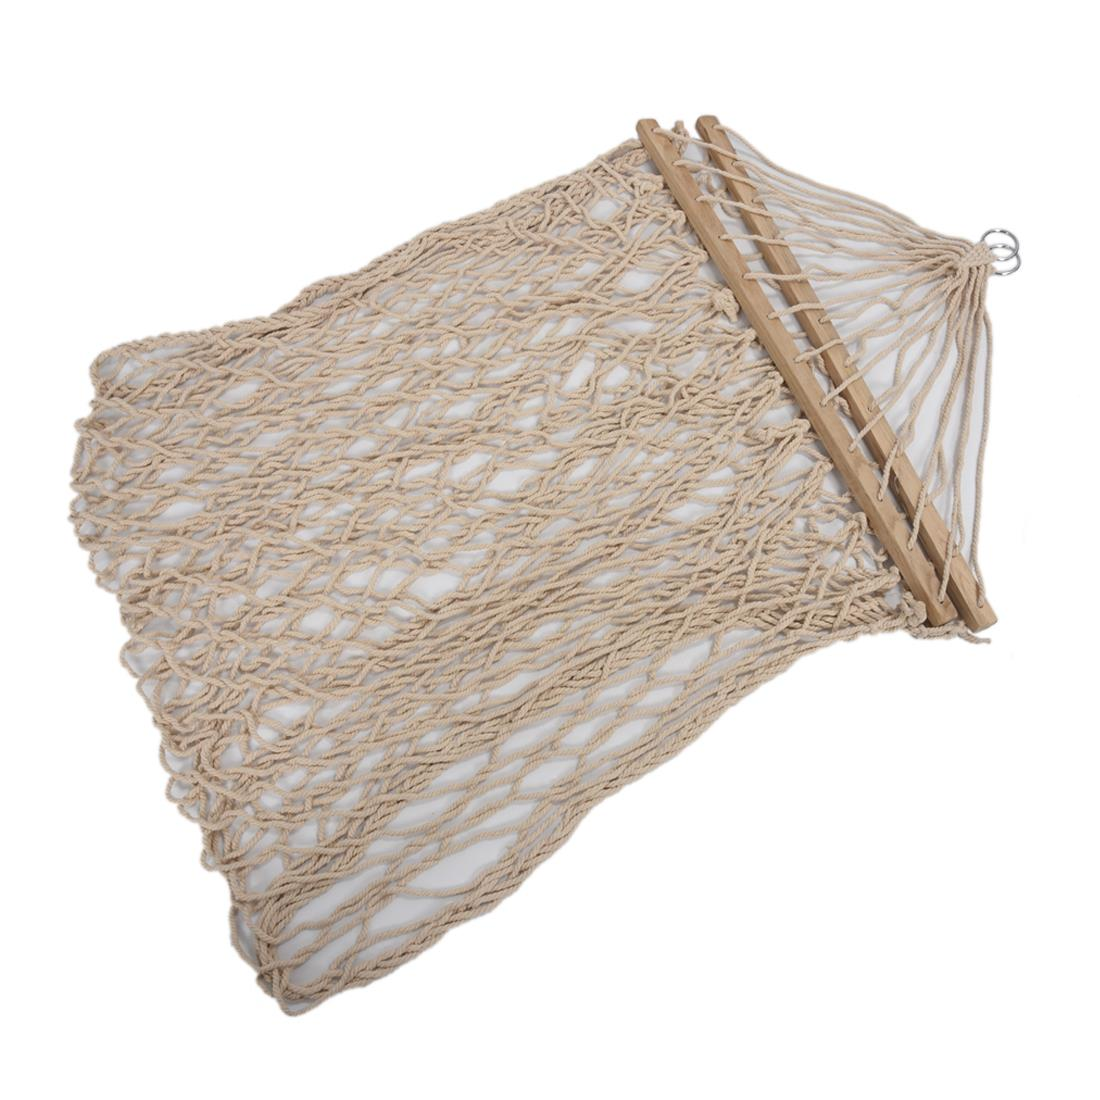 Hot Sale White Cotton Rope Swing Hammock Hanging On The Porch Or On A Beach